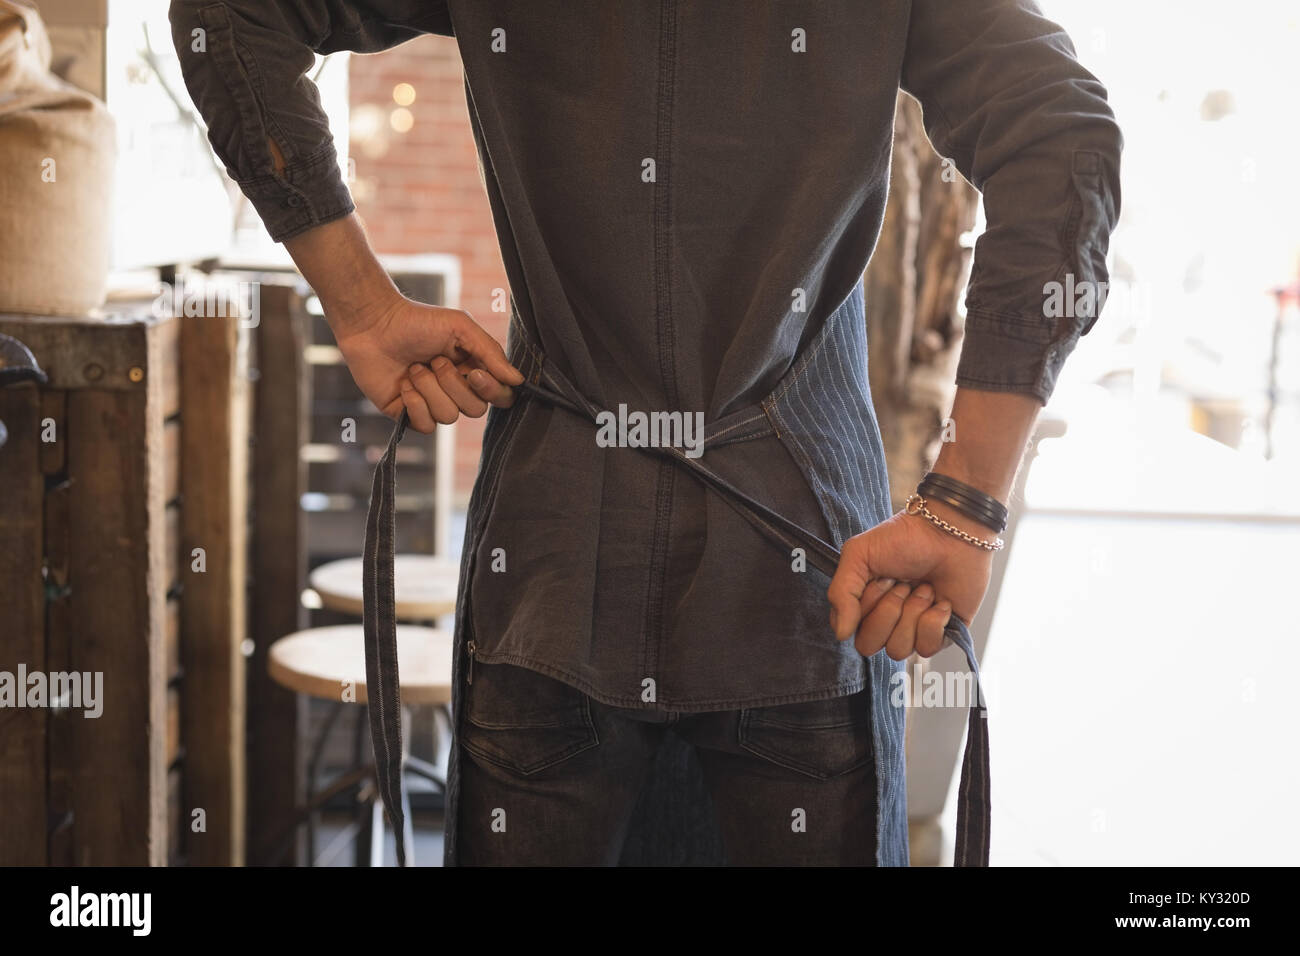 Waiter tying apron in coffee shop - Stock Image